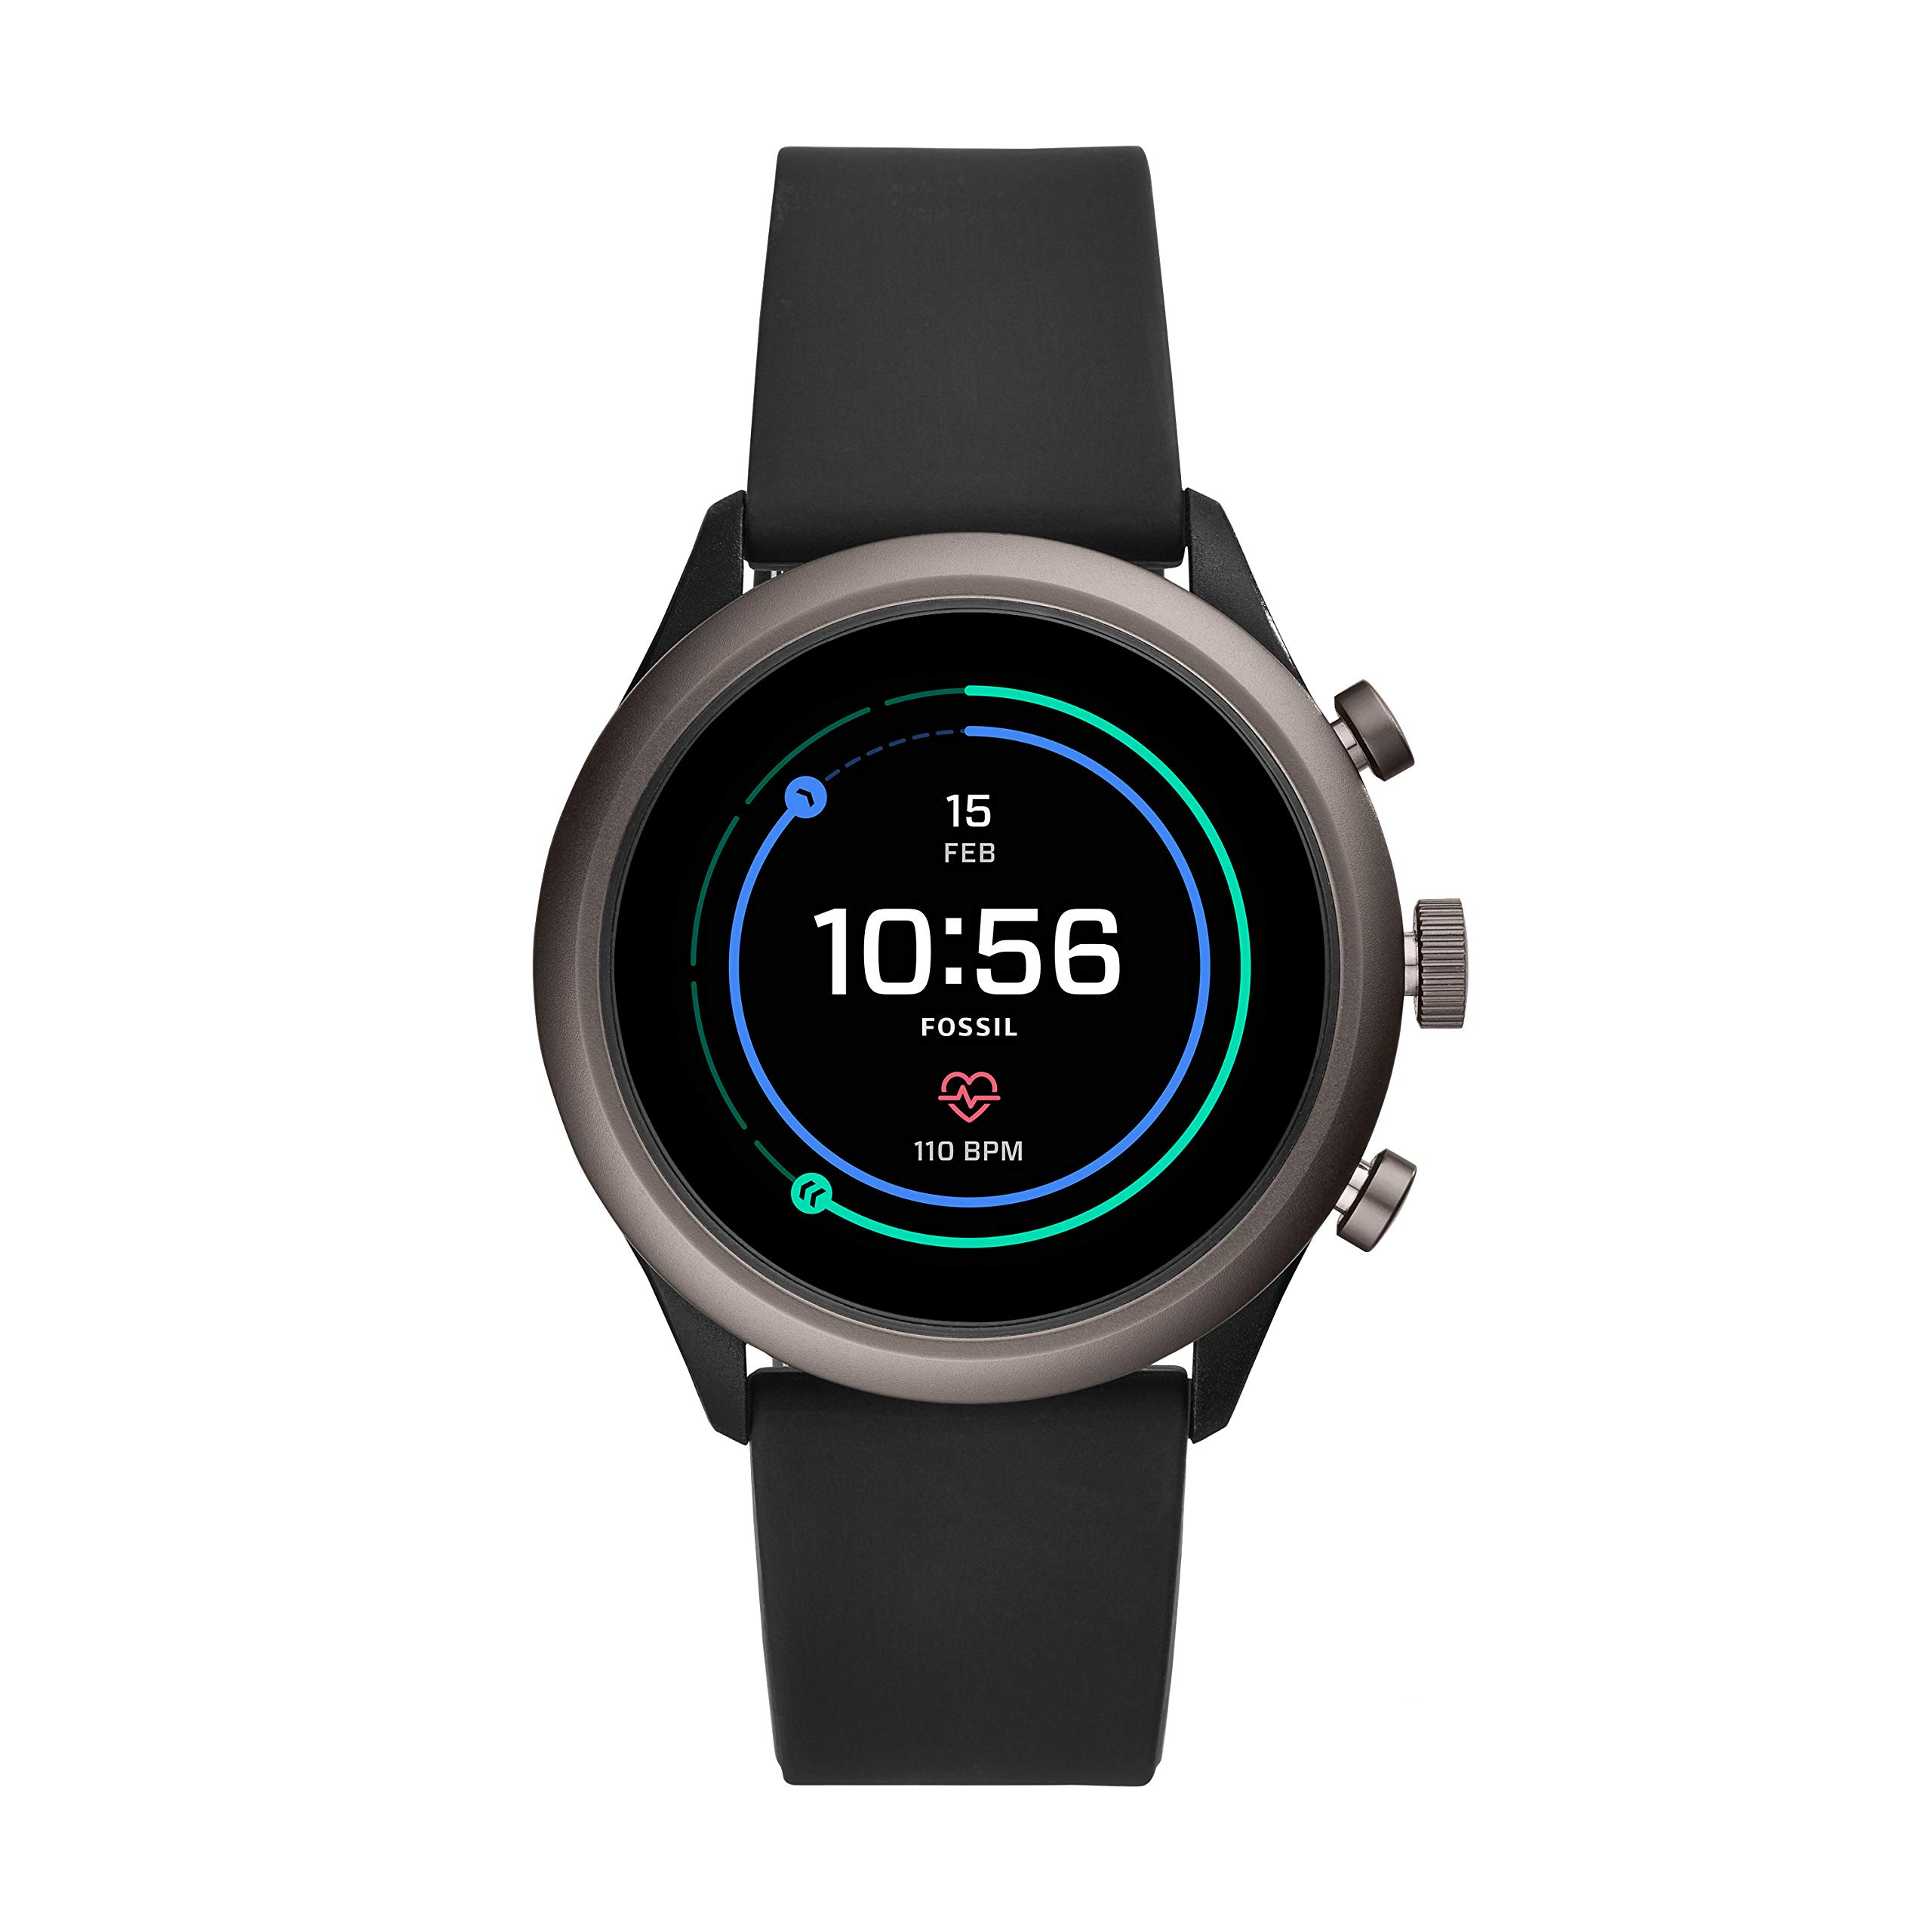 Fossil Men's Gen 4 Sport Heart Rate Metal and Silicone Touchscreen Smartwatch, Color: Grey, Black (FTW4019) by Fossil